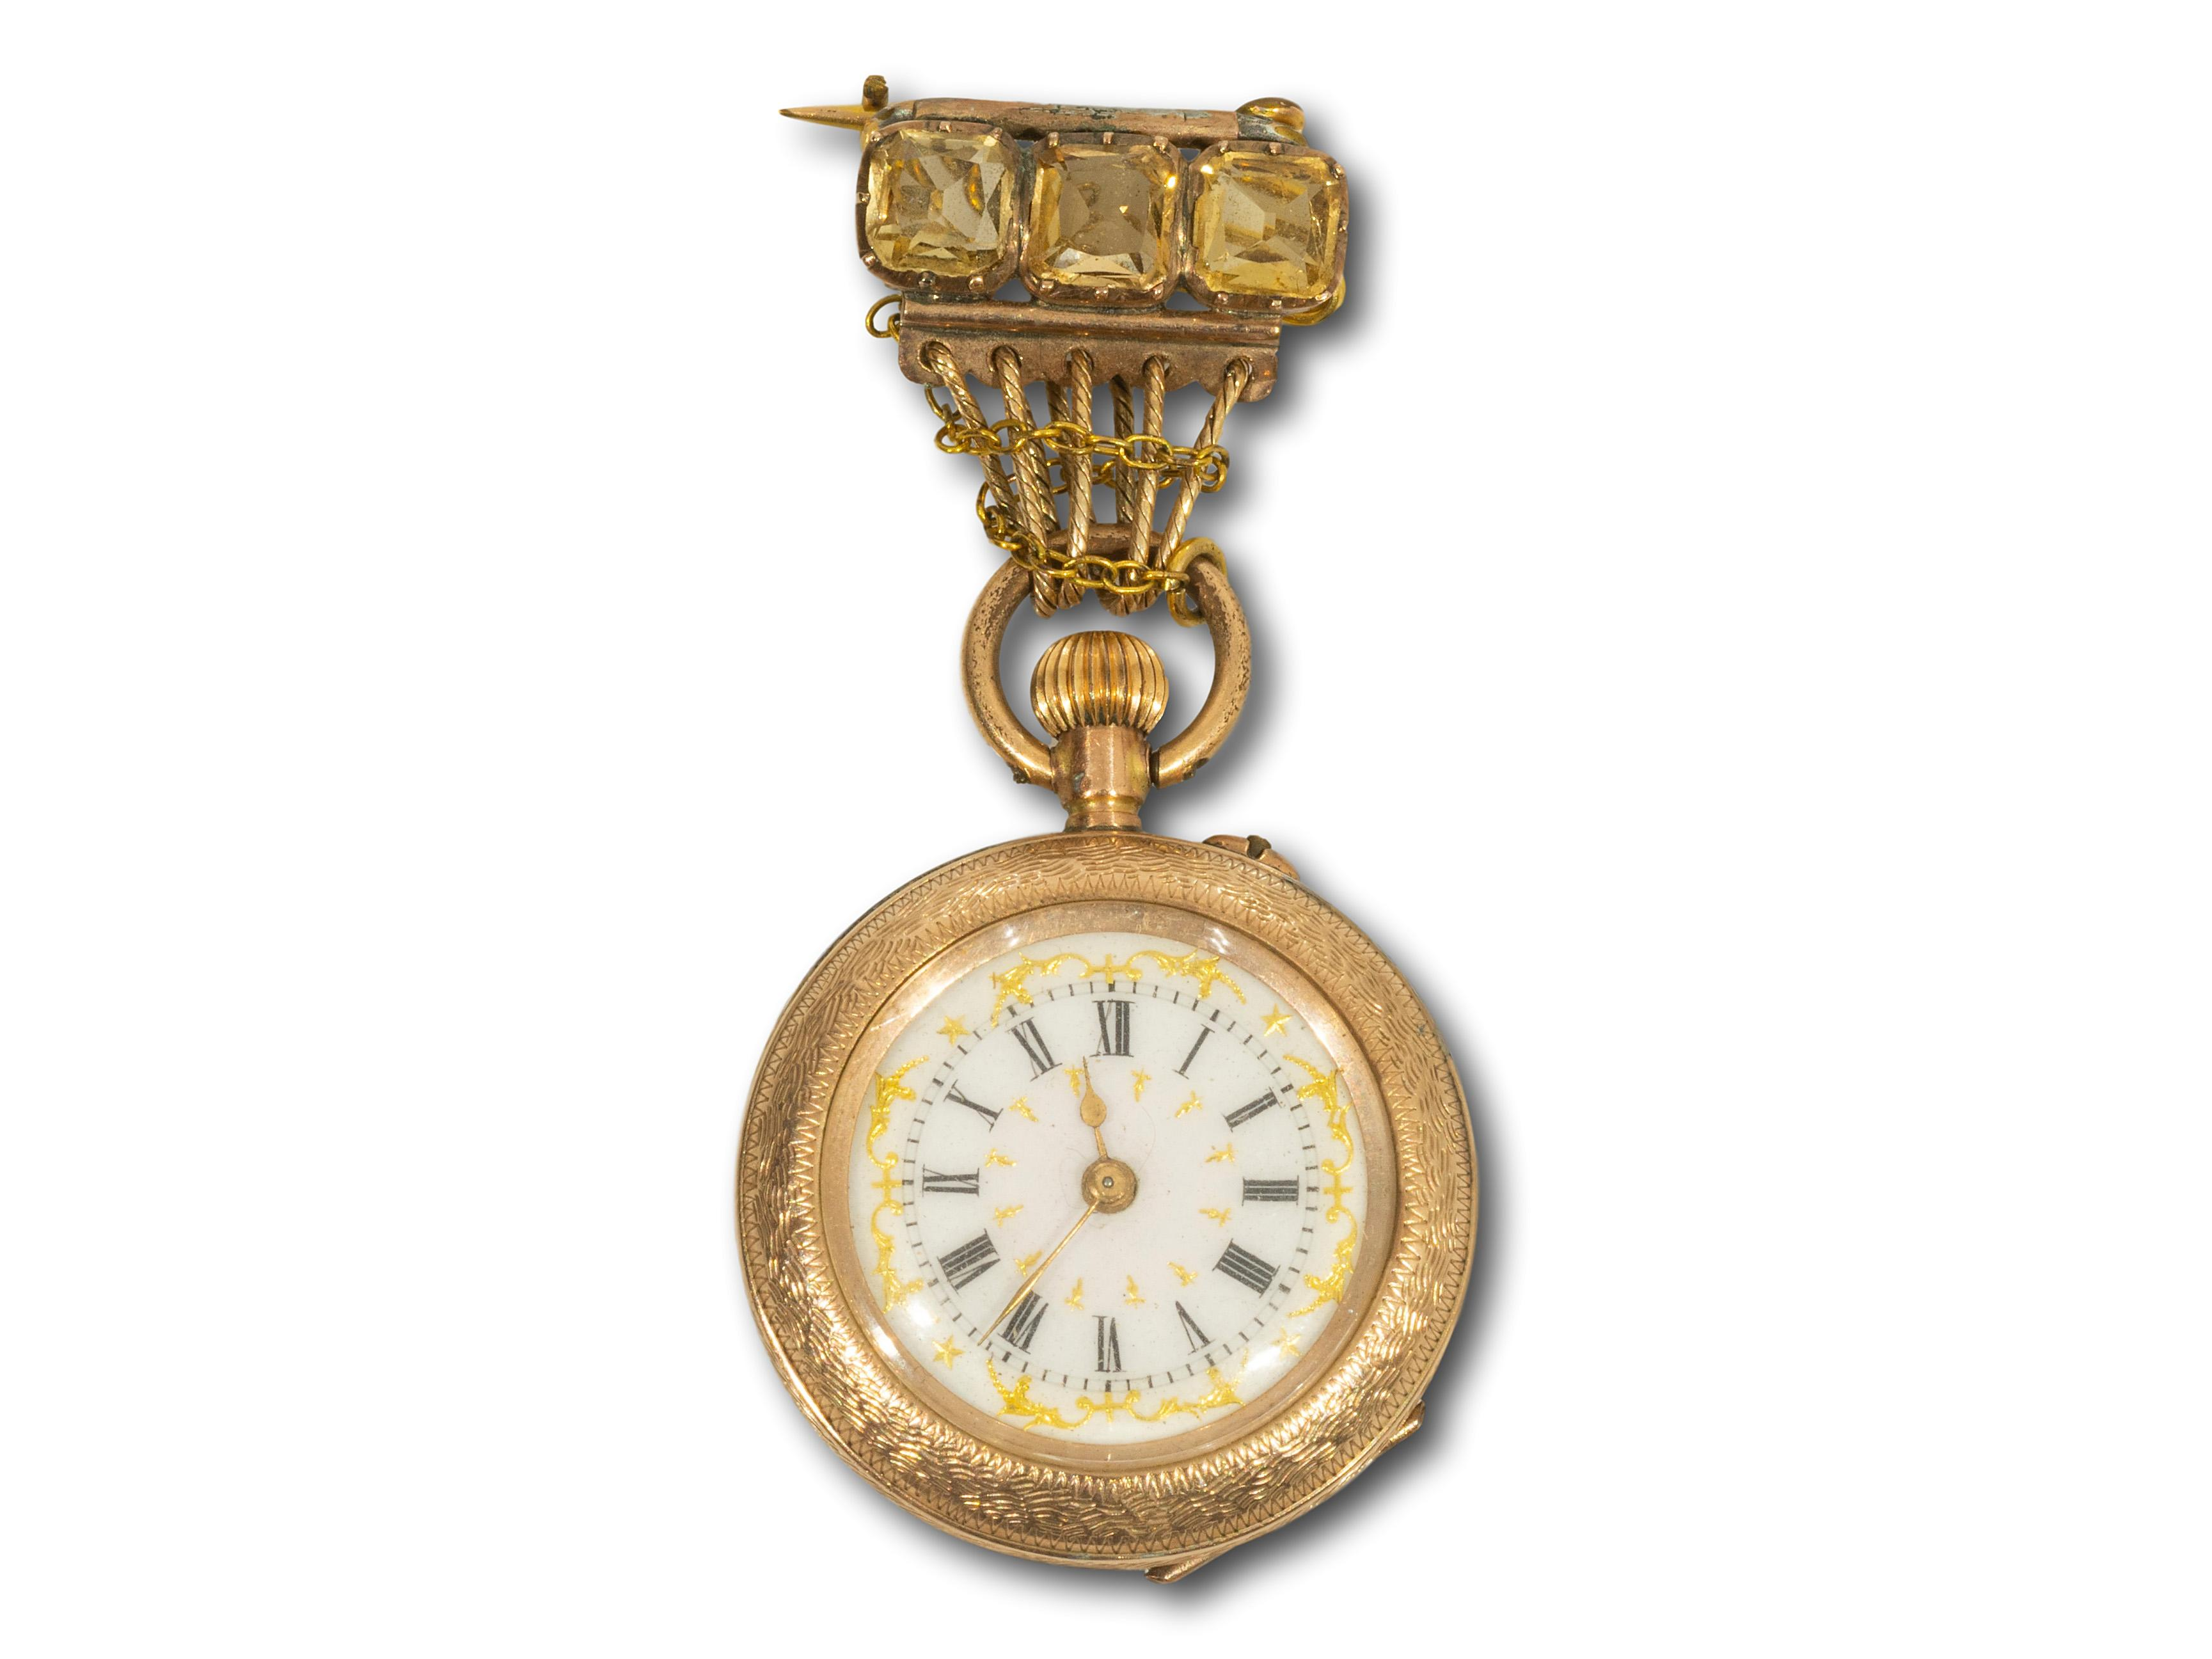 A Ladies Pocket Watch, A/F, total weight 21.8g